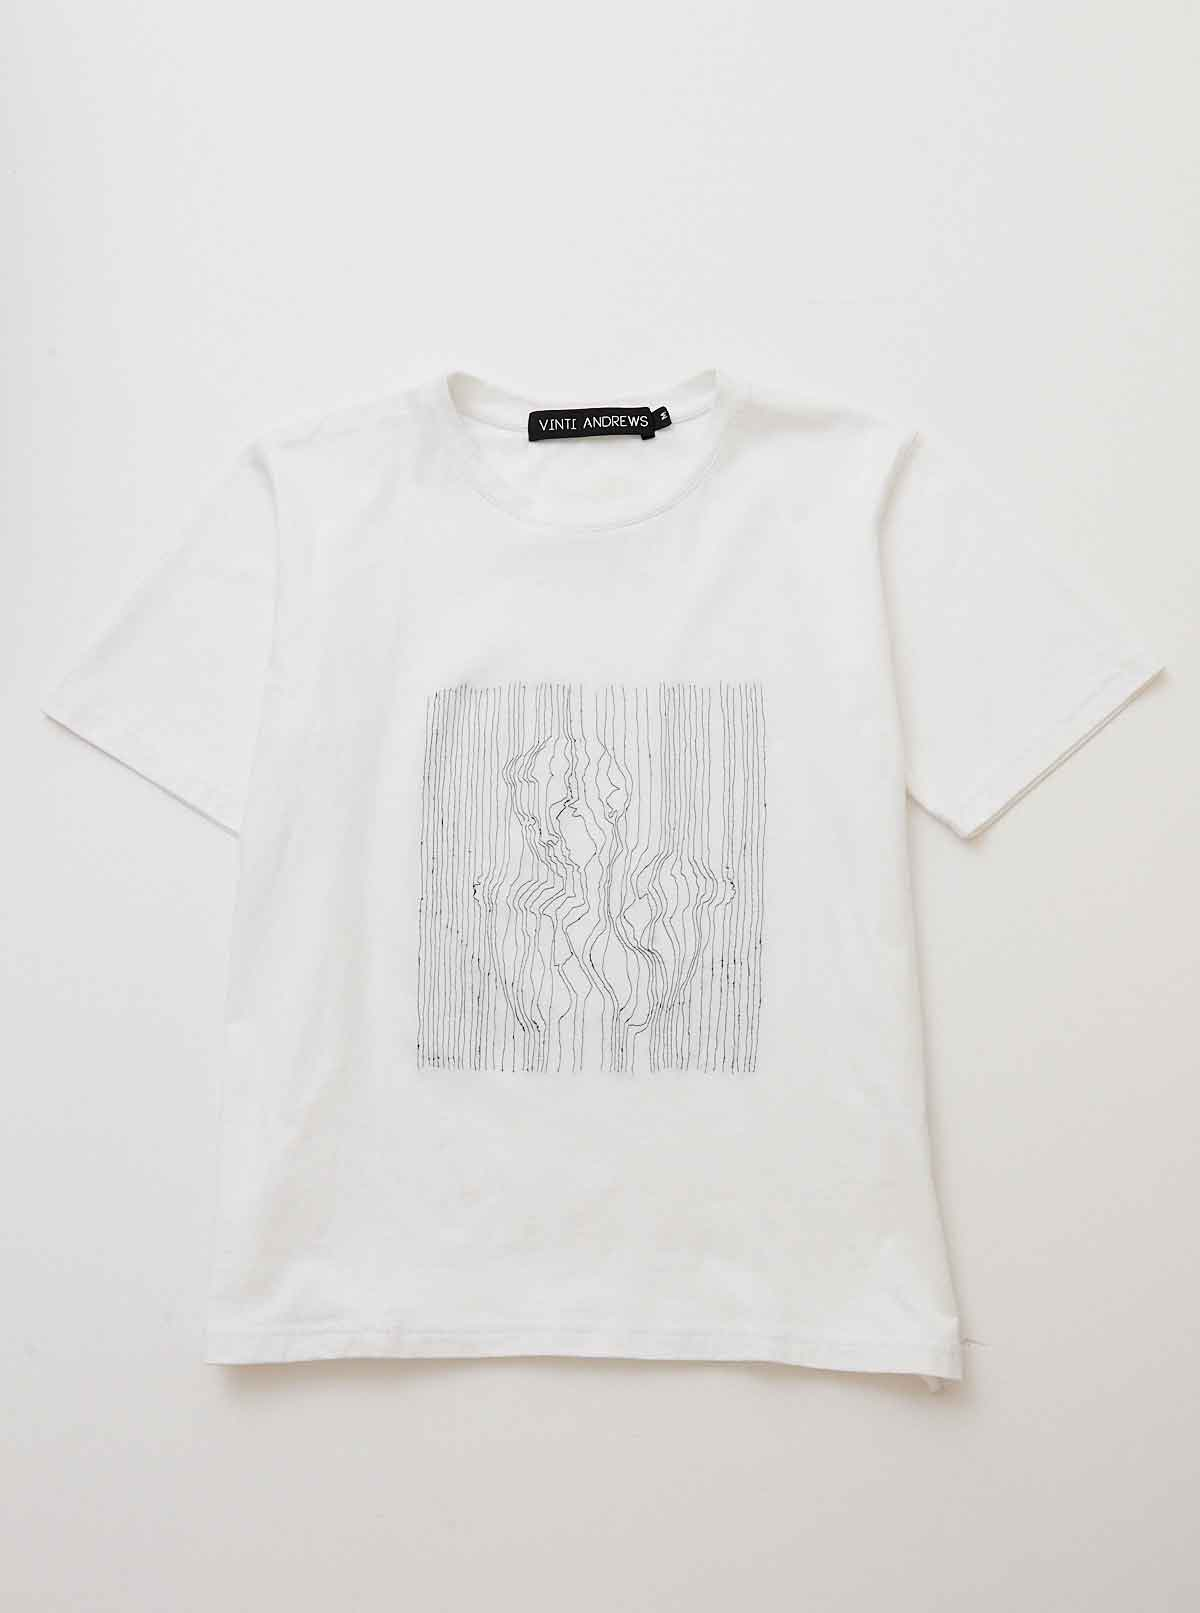 Vinti Andrews Embroidery Body Line T-Shirt